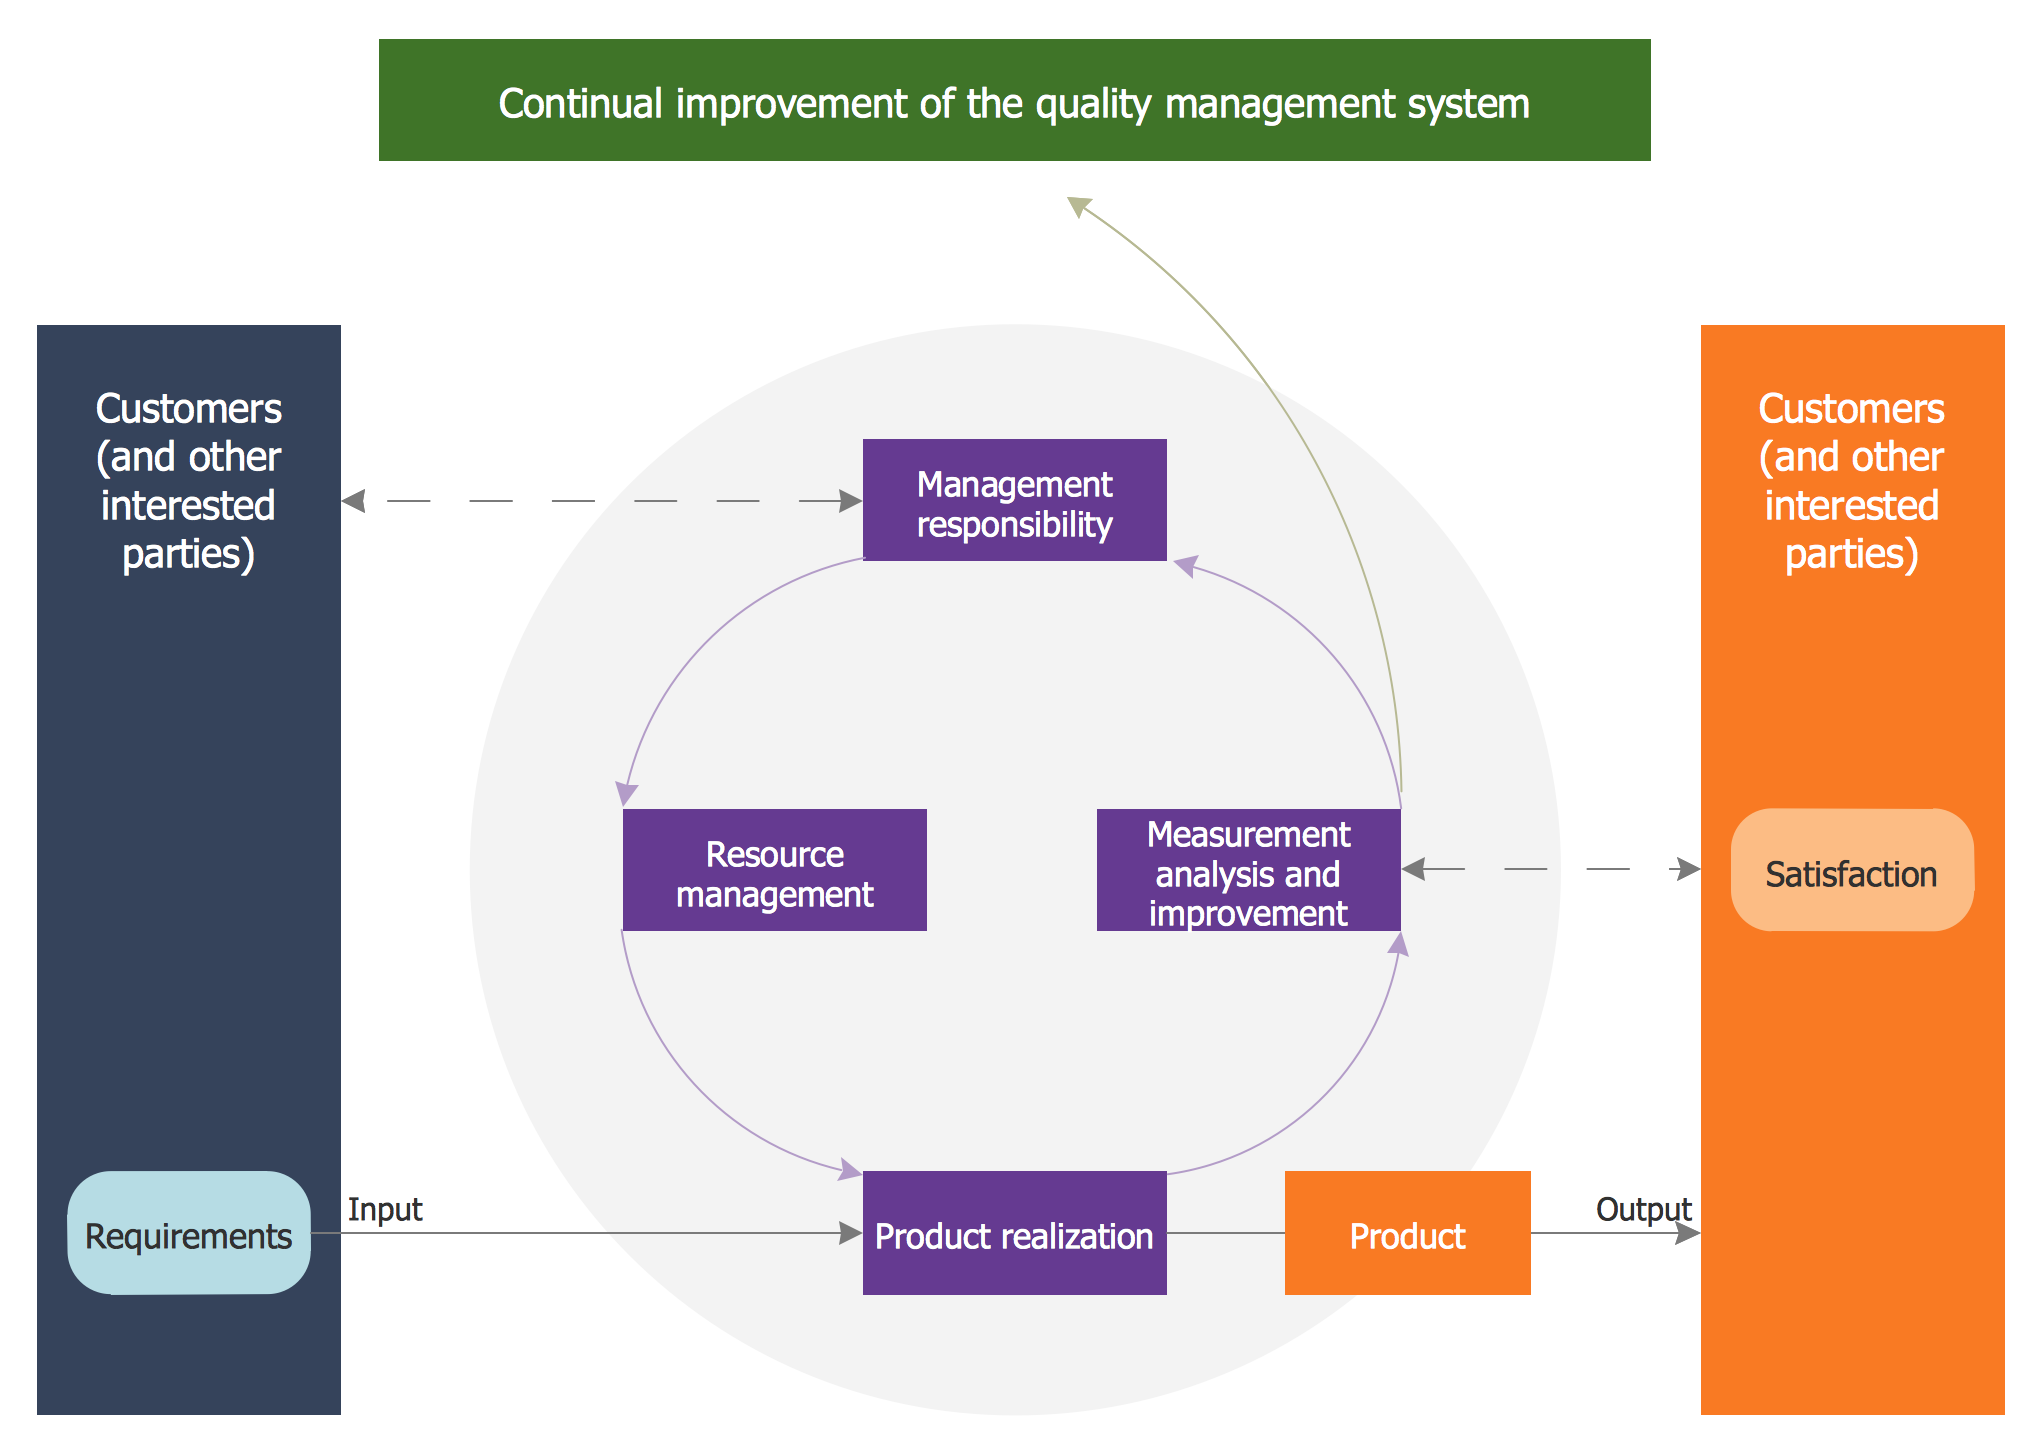 quality management system construction concept Iso 9000 introduction and support package: guidance on the concept and use of the process approach for management systems 1) introduction key words: management system, process approach, system uniformity in the structure of quality management systems or uniformity of documentation.